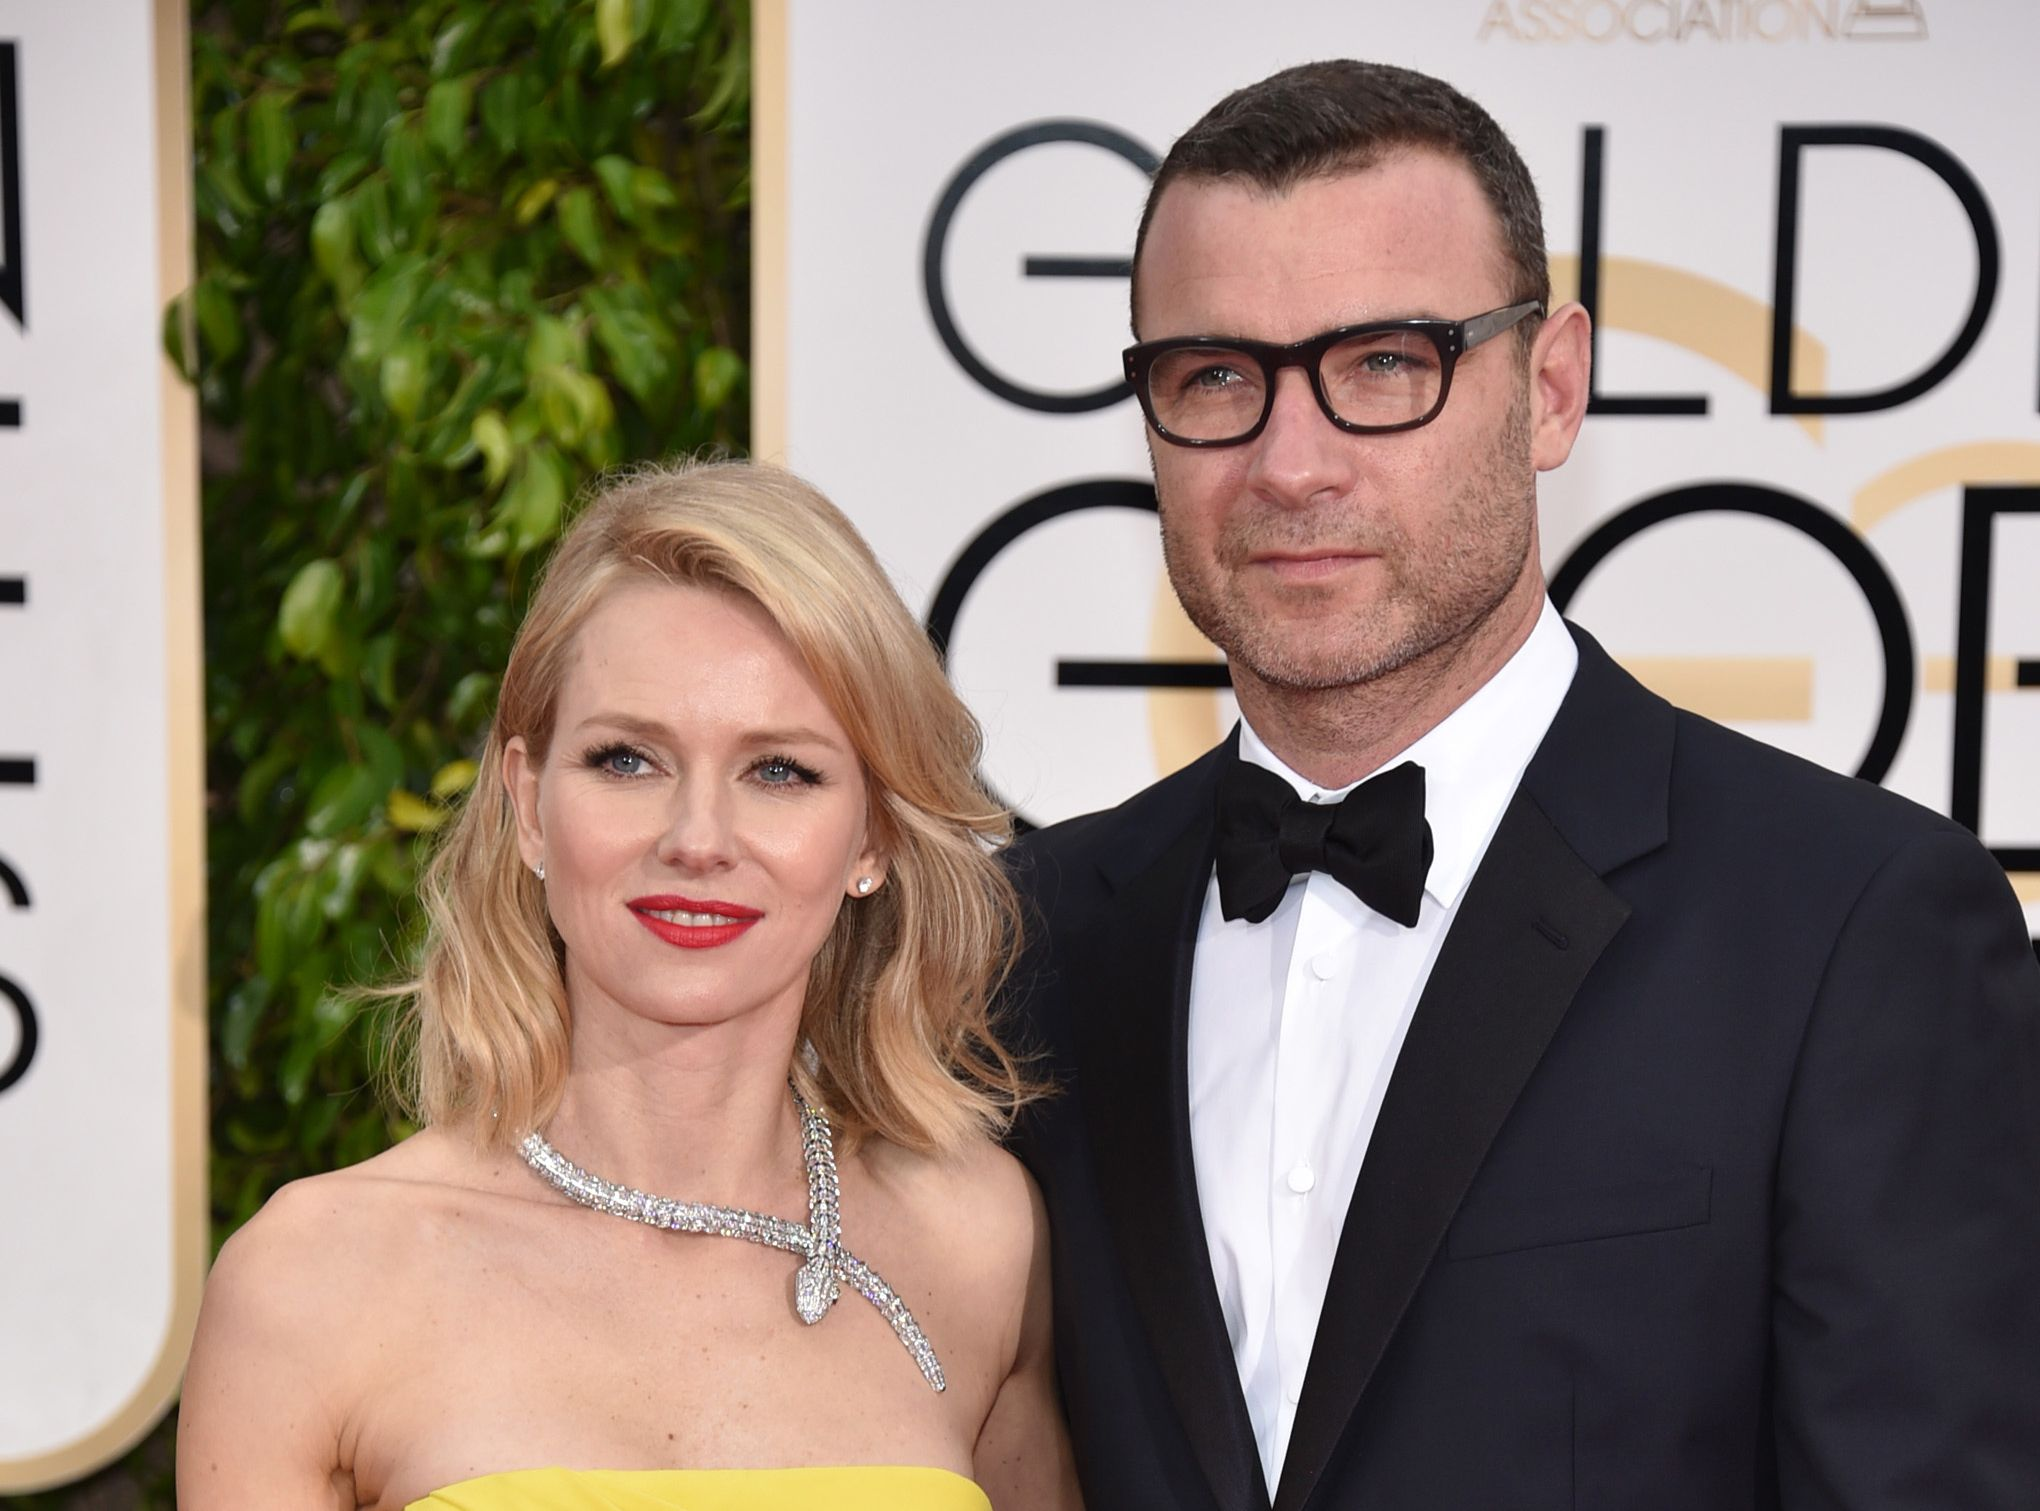 Naomi Watts is a British actress. We best known for her talented,  down-to-earth and sophisticated nature and also for her roles in movies  like Mulh…